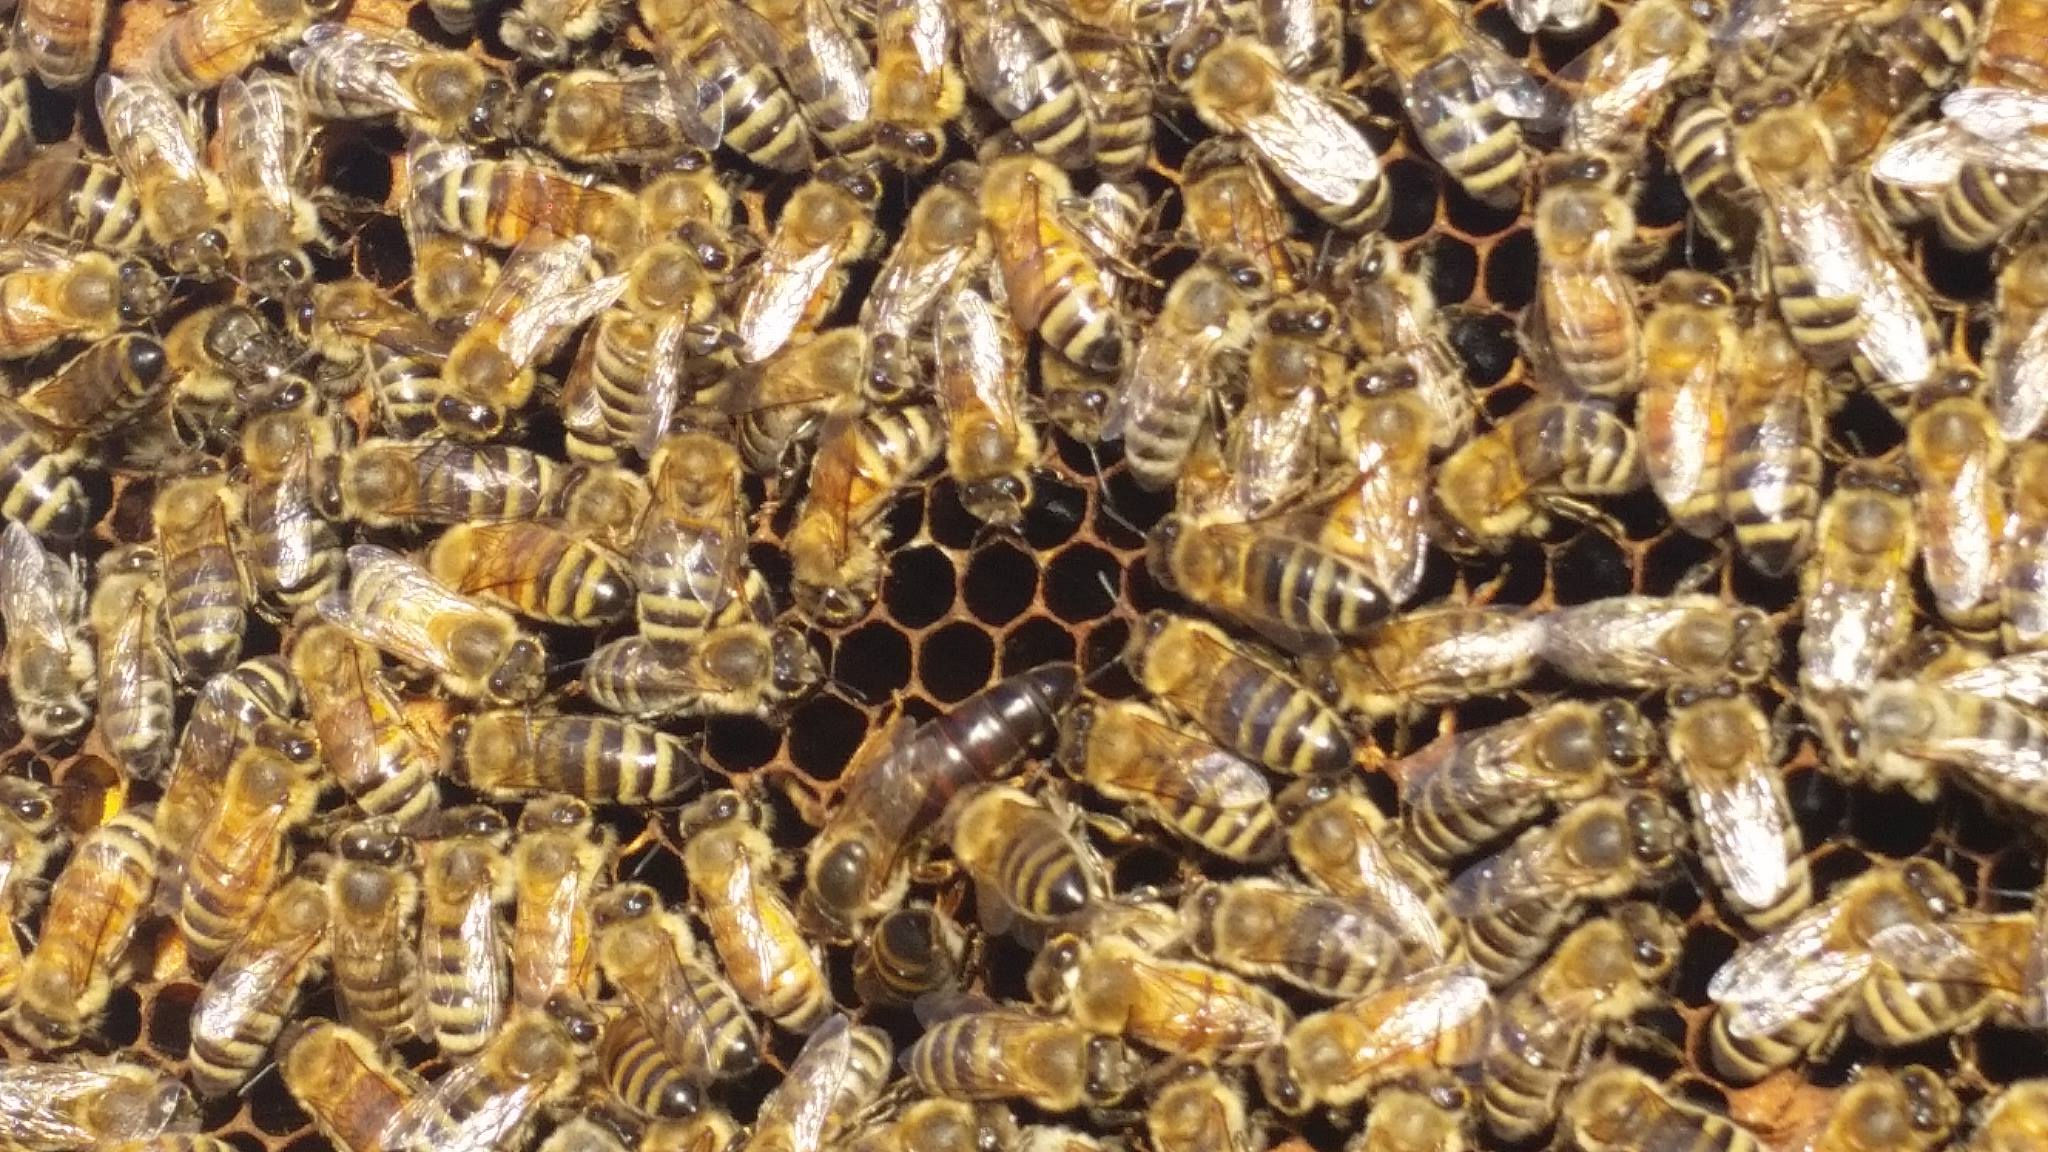 Bees in a hive, photo undated   Photo courtesy of Casey Lofthouse, St. George News